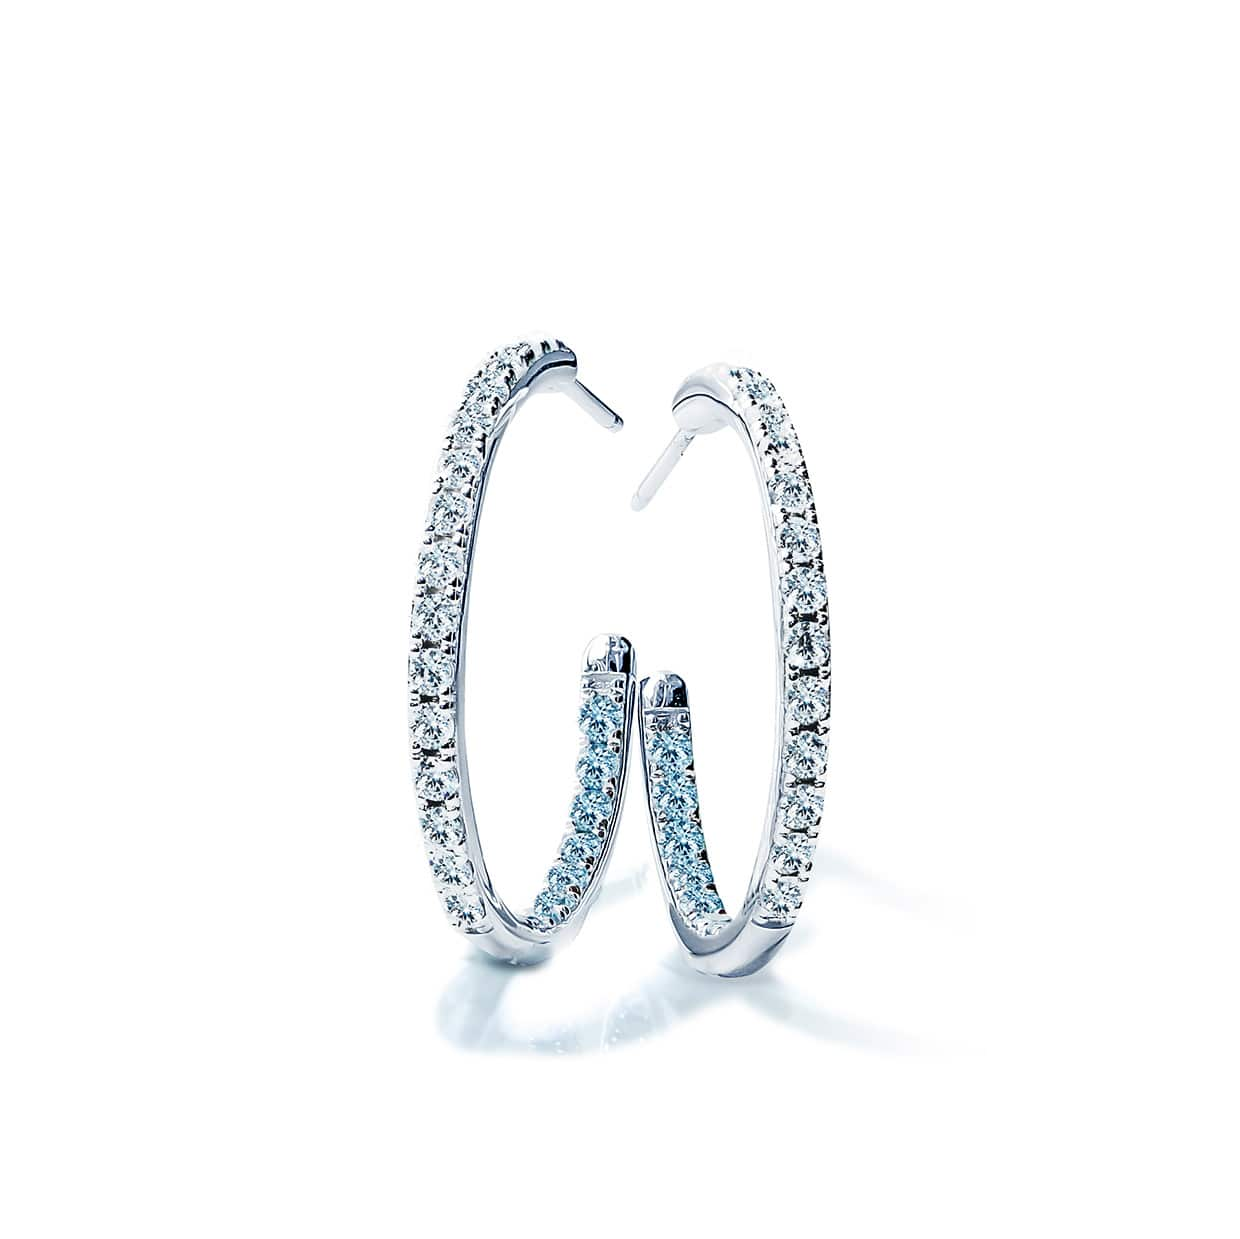 Oxford Silver White & Aqua Hoop Earrings - Abelstedt